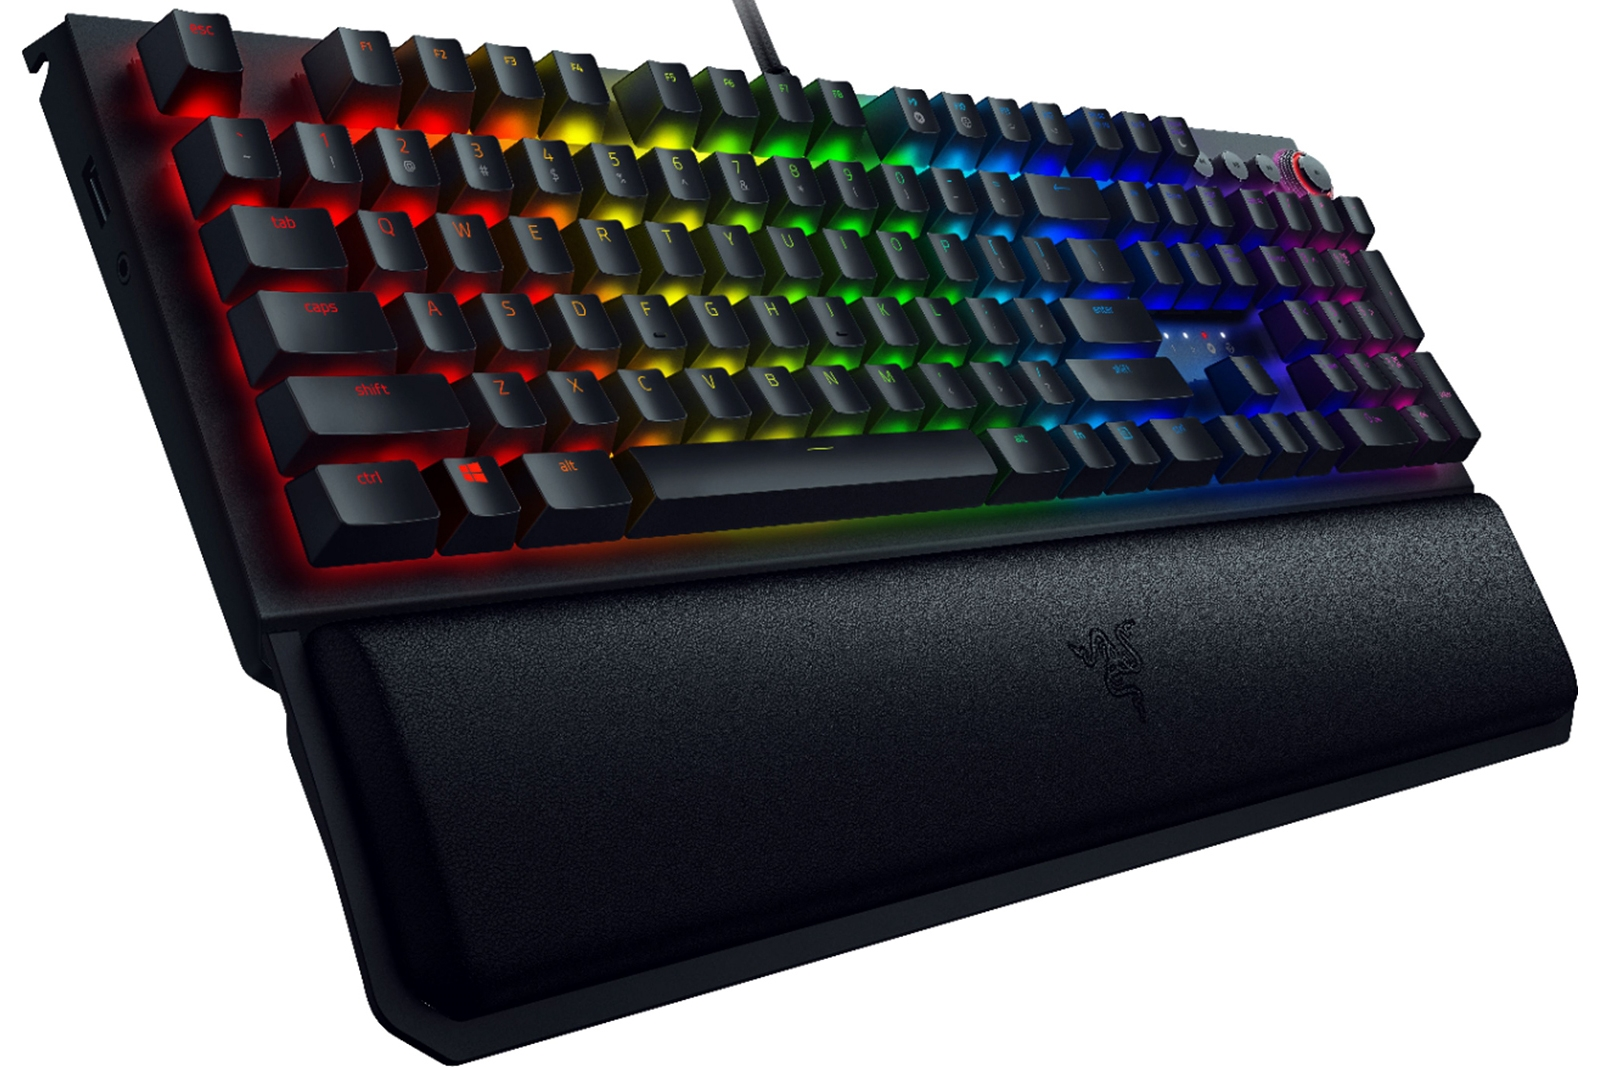 Razer's BlackWidow Elite keyboard drops to an all-time low $70 at Best Buy | DeviceDaily.com